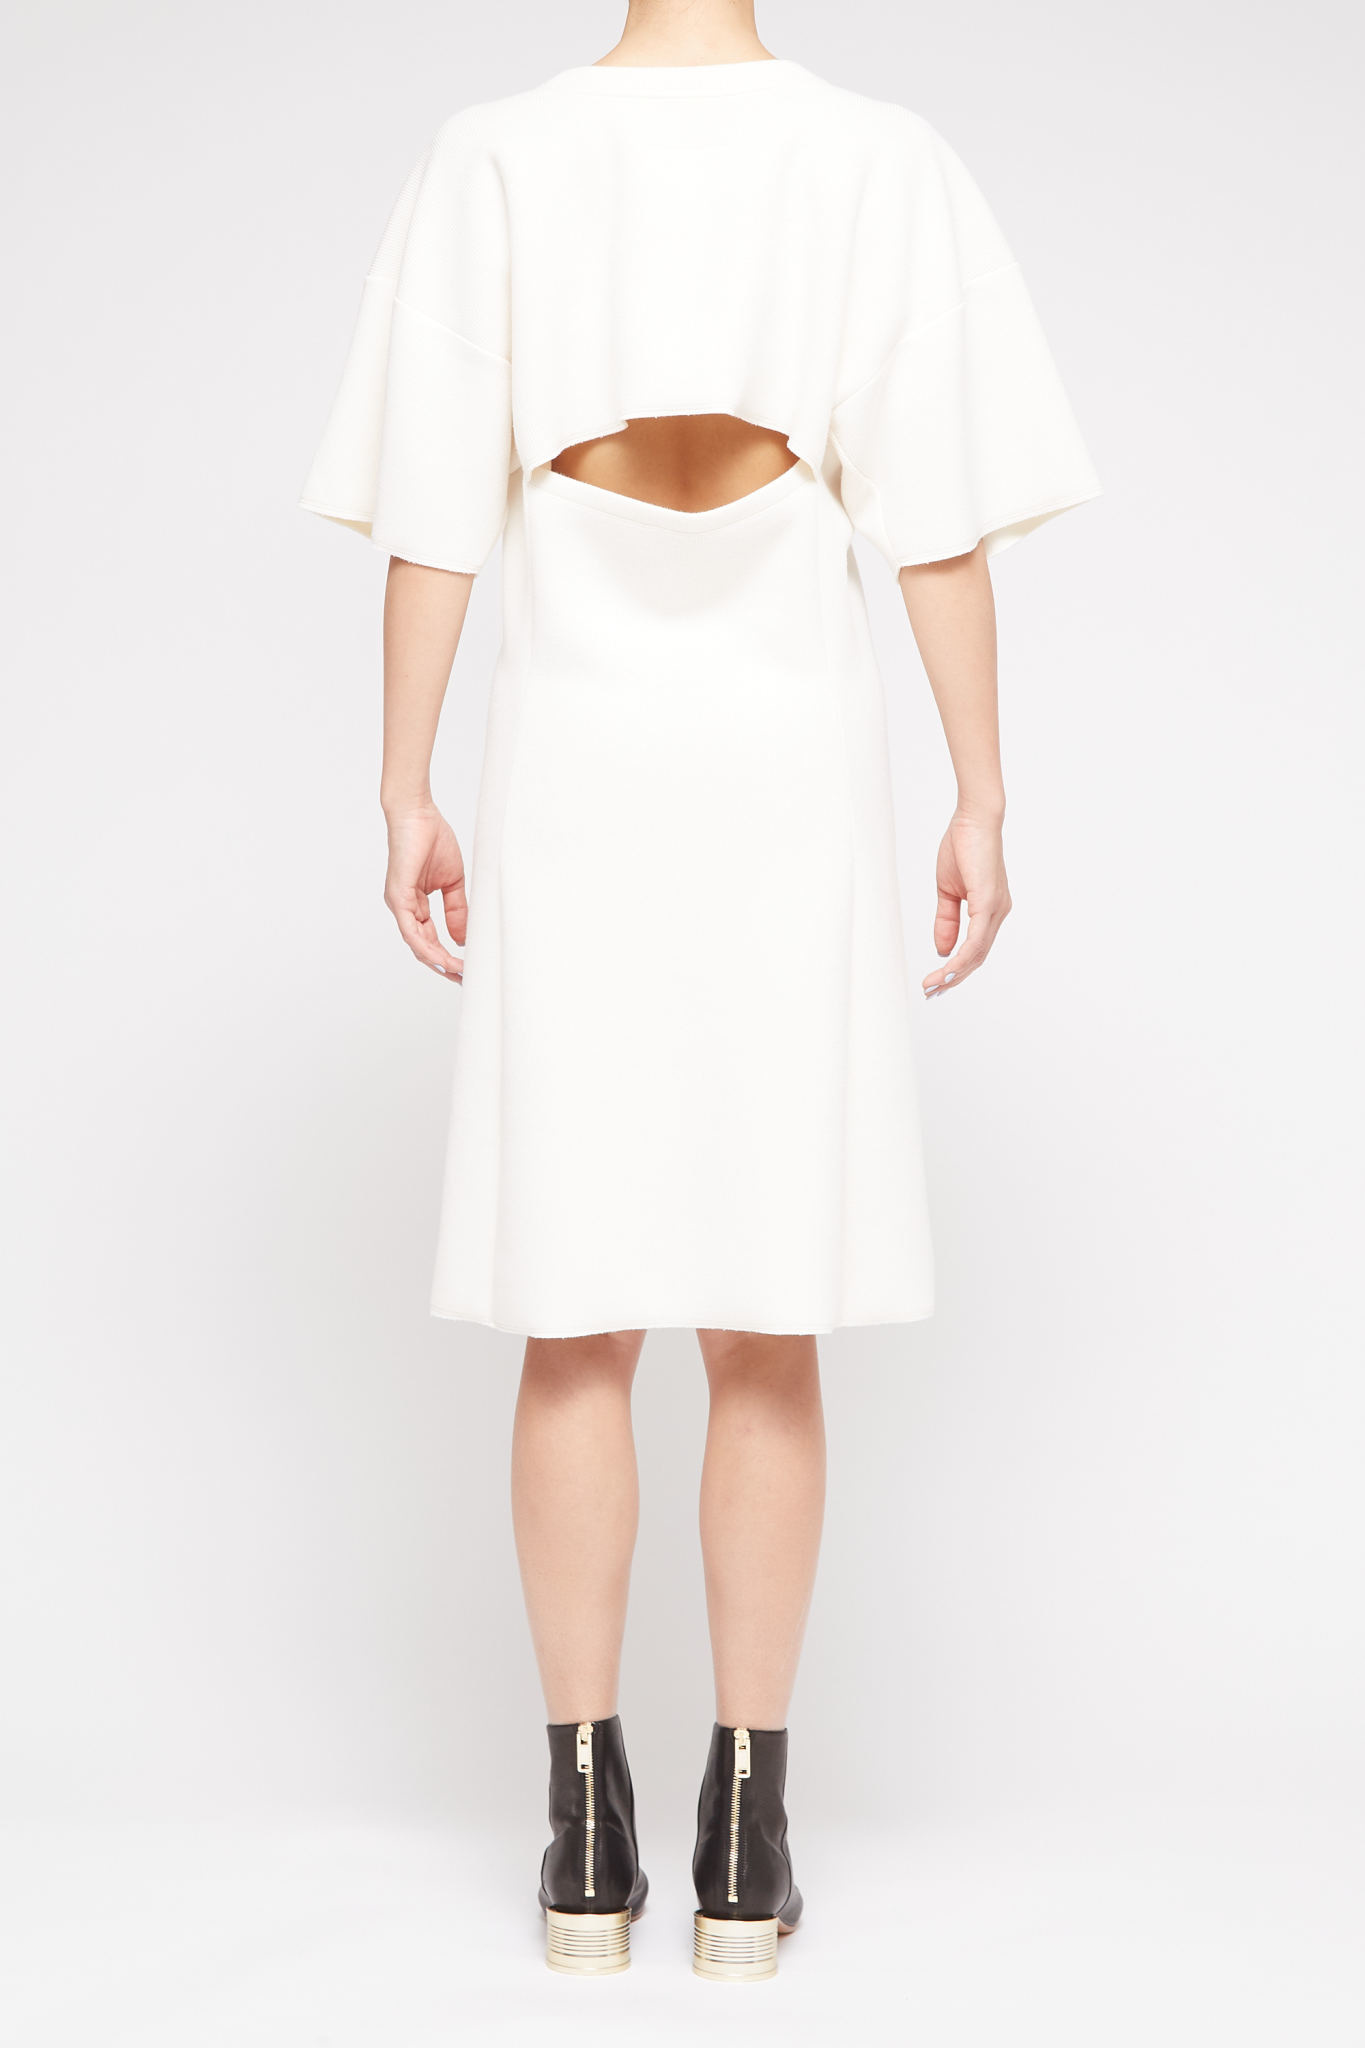 MM6 MAISON MARGIELA Open Back Dress in Cream